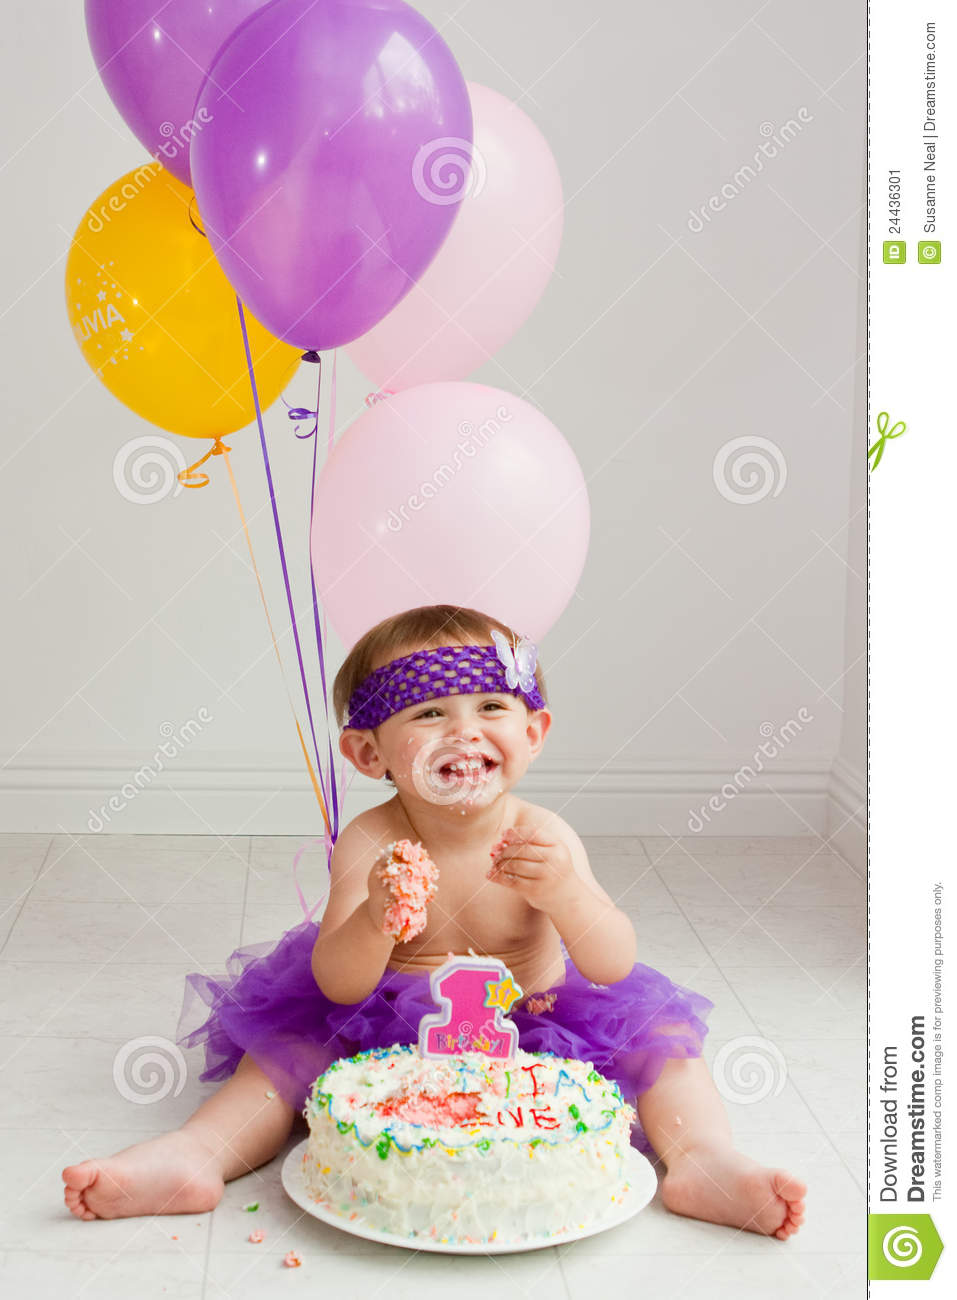 One Year Old Birthday Girl With Cake Stock Image Image of floor